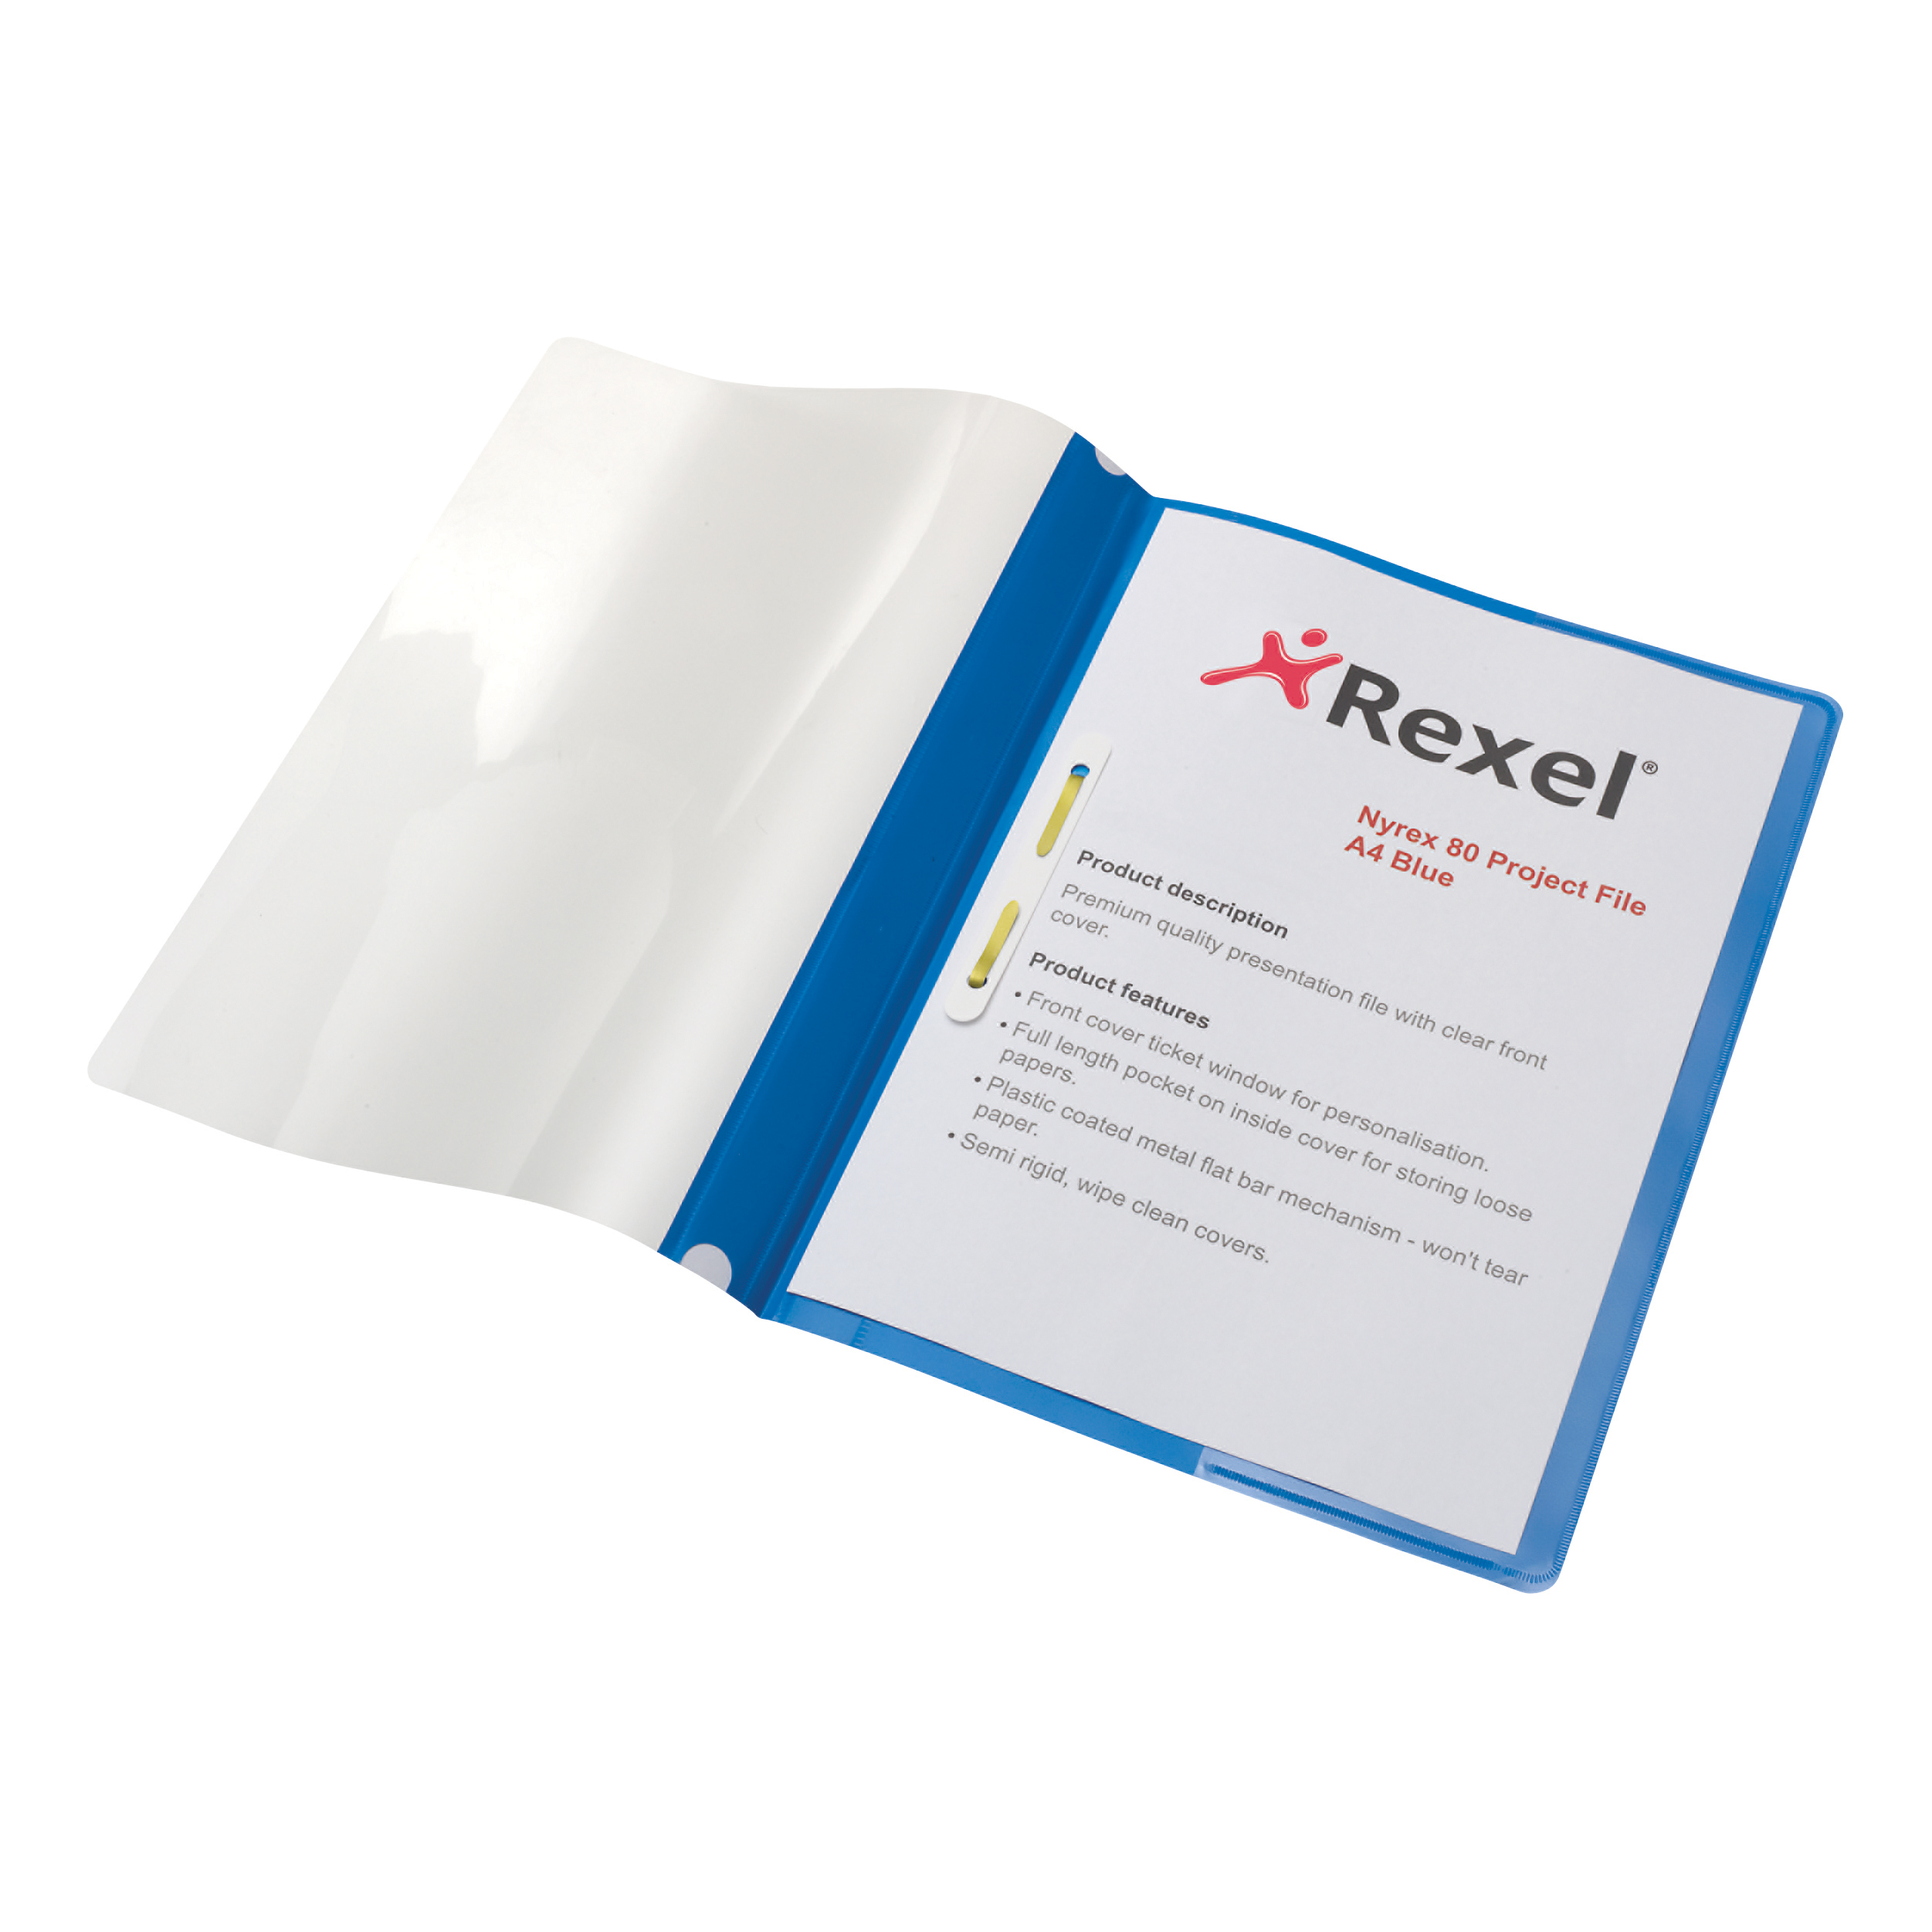 Rexel Nyrex Project Flat Bar File Semi-rigid Plastic Clear Front A4 Blue Ref 13045BU [Pack 5]